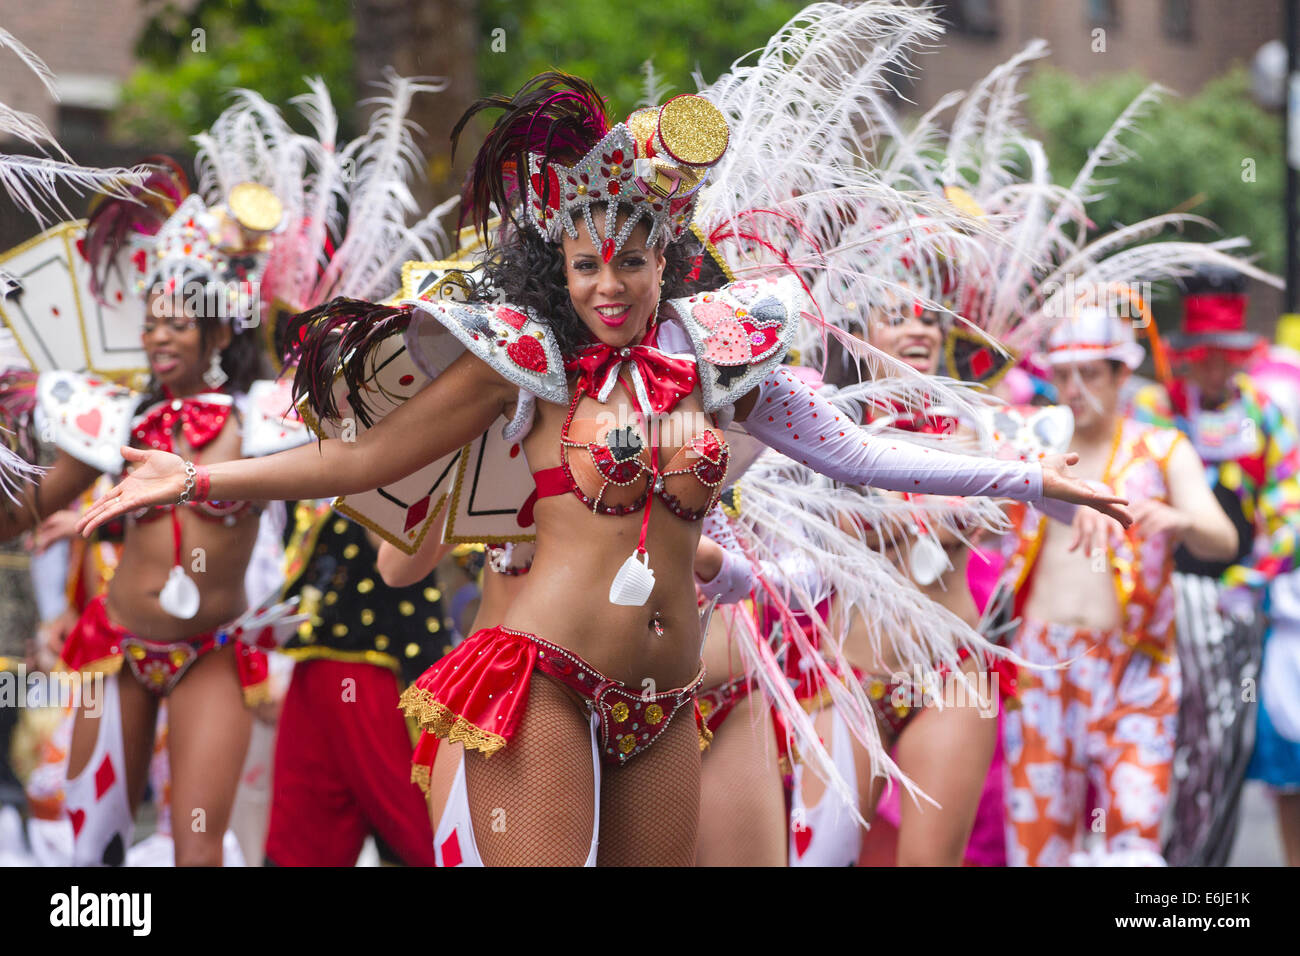 London, UK. 25th Aug, 2014. Carnival performers on a wet August Bank Holiday in the rain at The Notting Hill Carnival - Stock Image